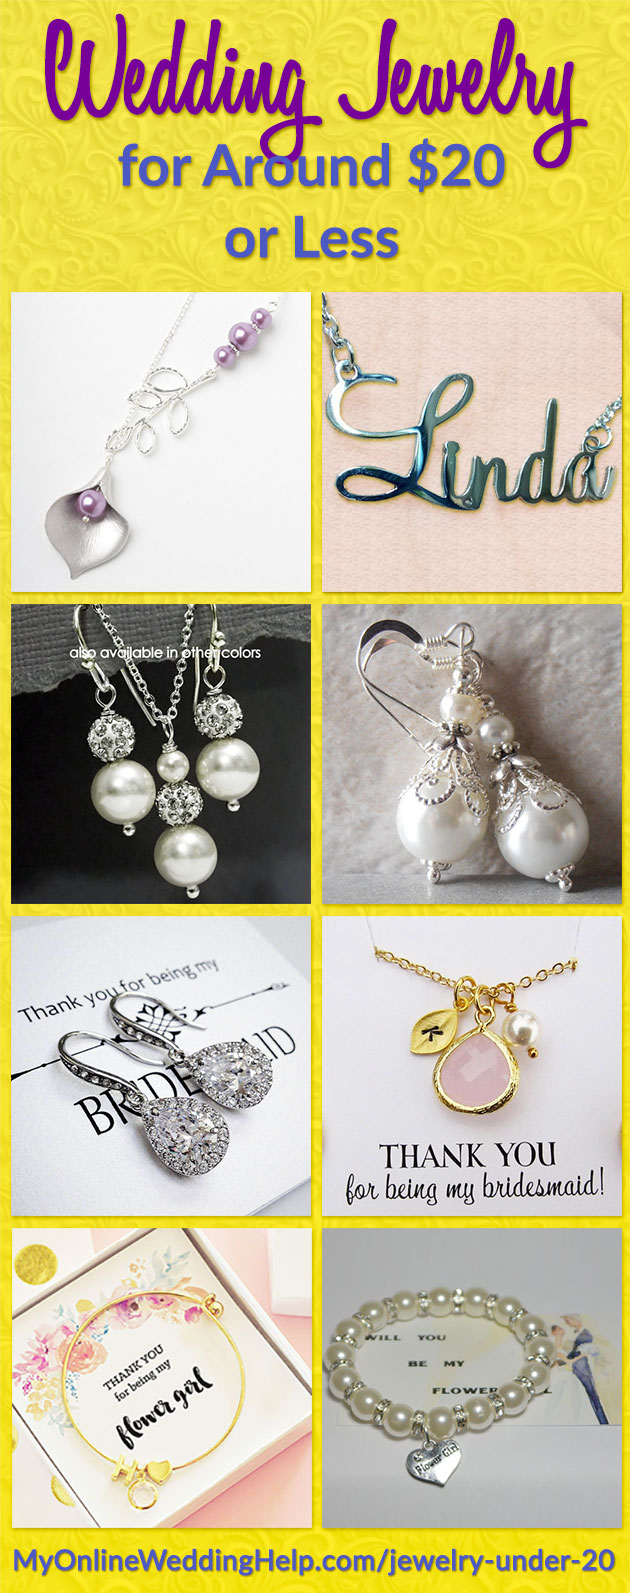 Wedding fashion jewelry instead of more expensive is a way to save. These wedding party gift items are around twenty dollars or less: Silver calla lily necklace, name necklace, swarvoski drop earrings and necklace set, Ultra pearl filigree earrings, thank you for being my bridesmaid rhinesone earrings, personalized initial and pendant necklace, personalized flower girl bracelet, and heart charm and pearl bracelet. There are links on the page to where you can find these. Scroll to number 106.